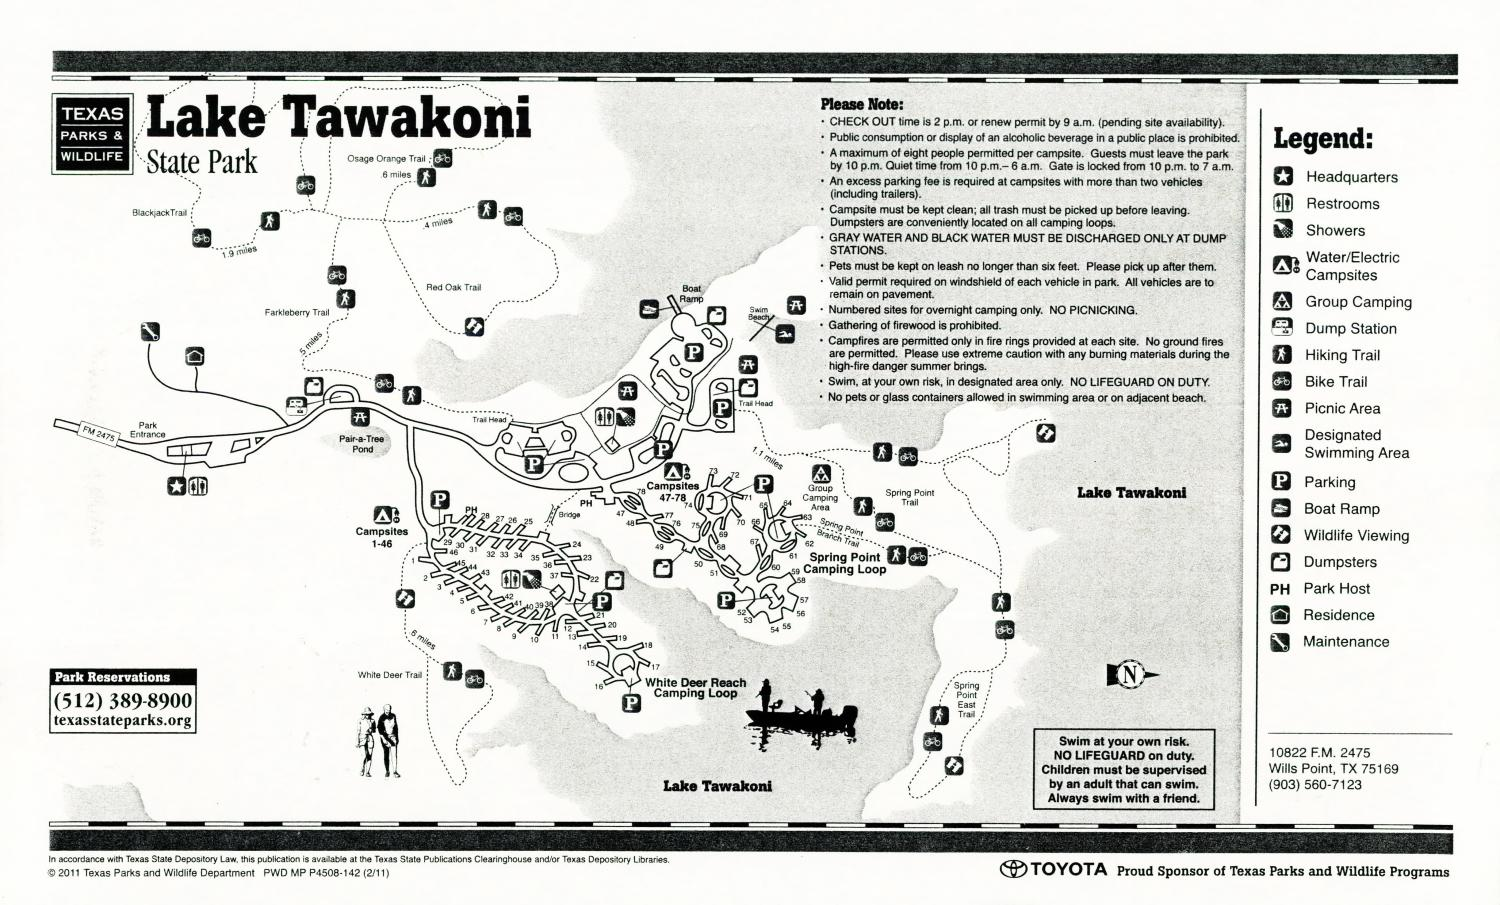 Lake Tawakoni State Park, Map of the Lake Tawakoni State Park outlining hiking trails and highlighting activities, facilities, and other features such as bathrooms, lodgings, water/electric, etc. It also contains general information for the park and for the Texas Parks and Wildlife Department.,